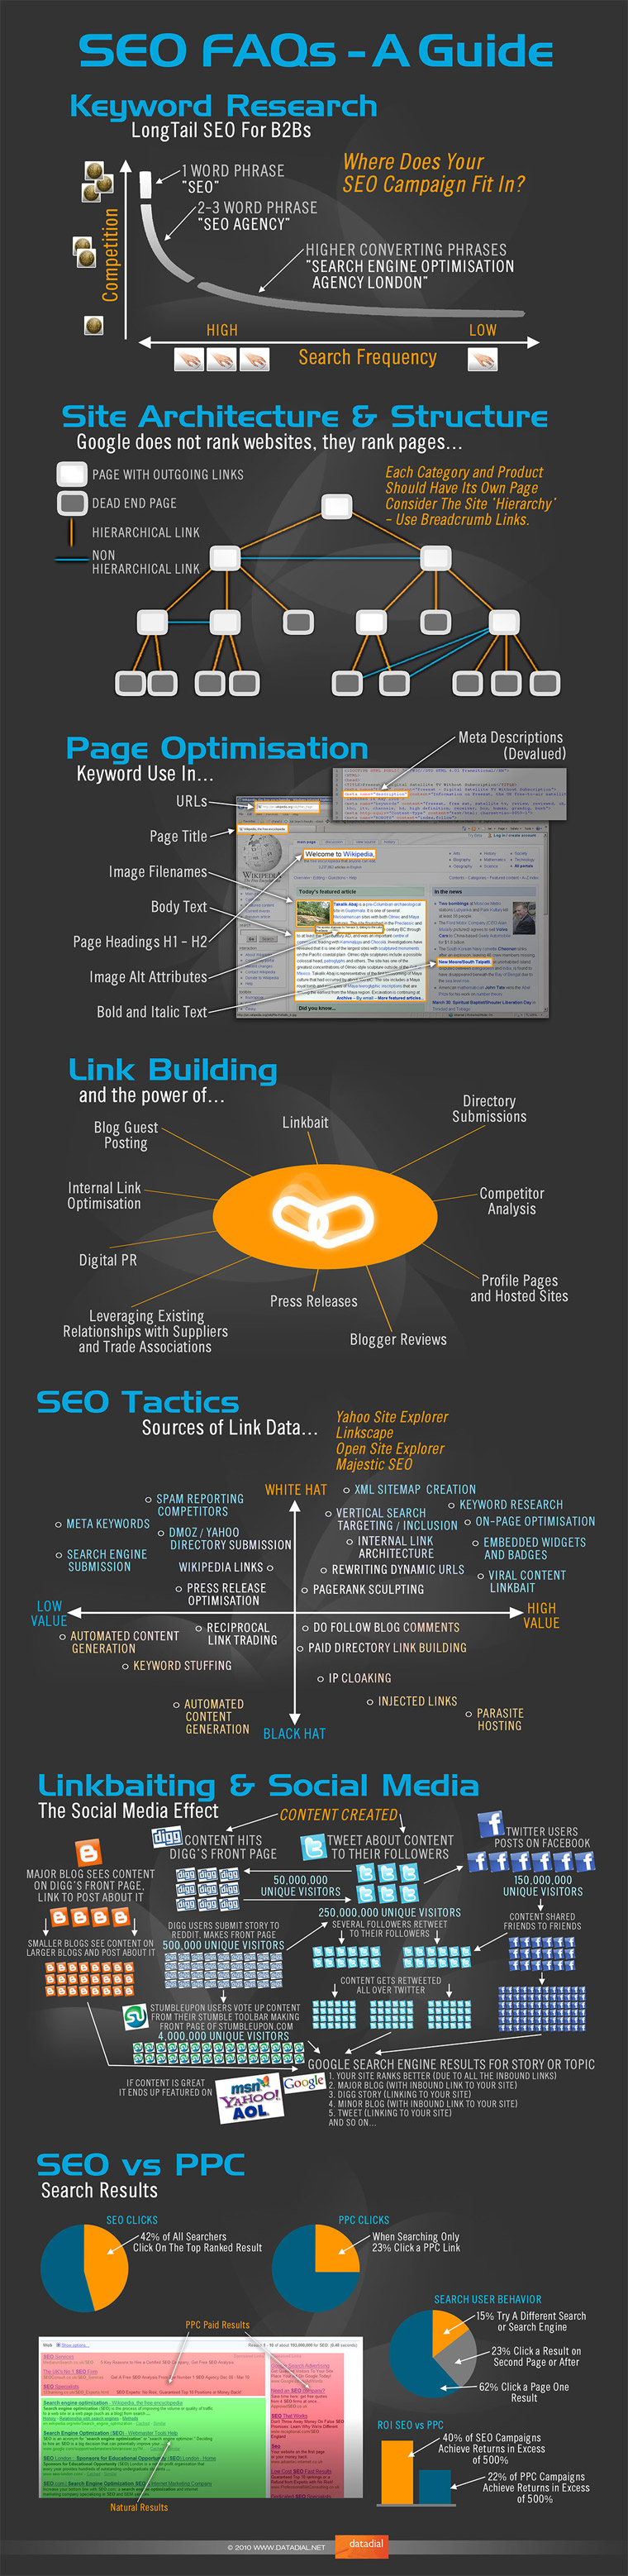 Quick and Simple SEO Tips for Blogs and Websites